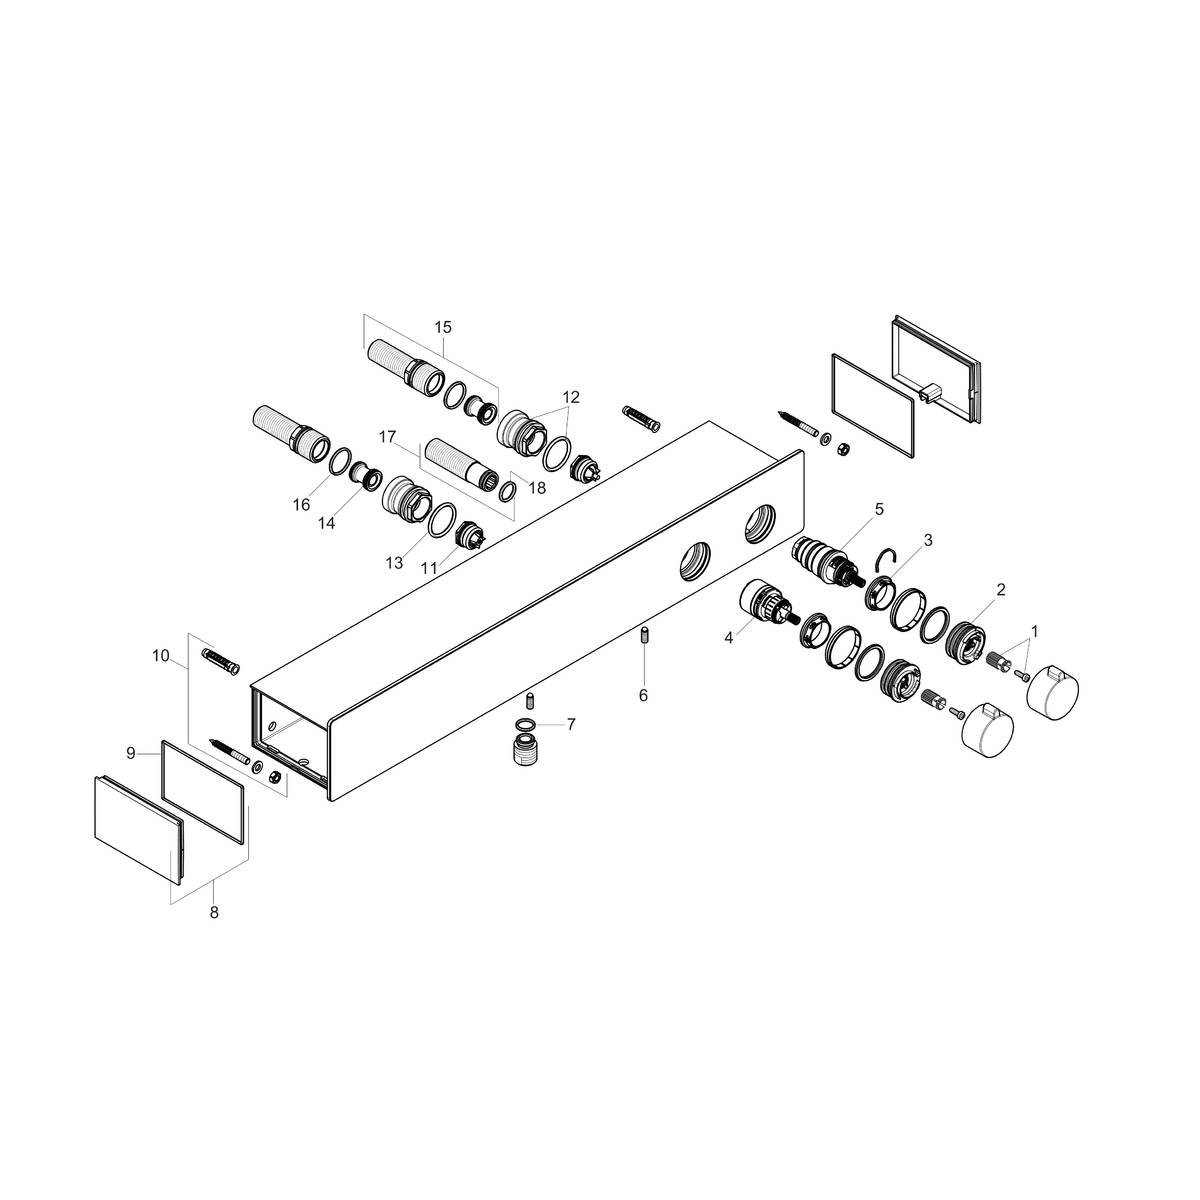 Showertablet Shower Faucets 2 Outlets Chrome Art No 13108001 Kitchen Gt Plumbing Systems Diagram Spare Parts For Product